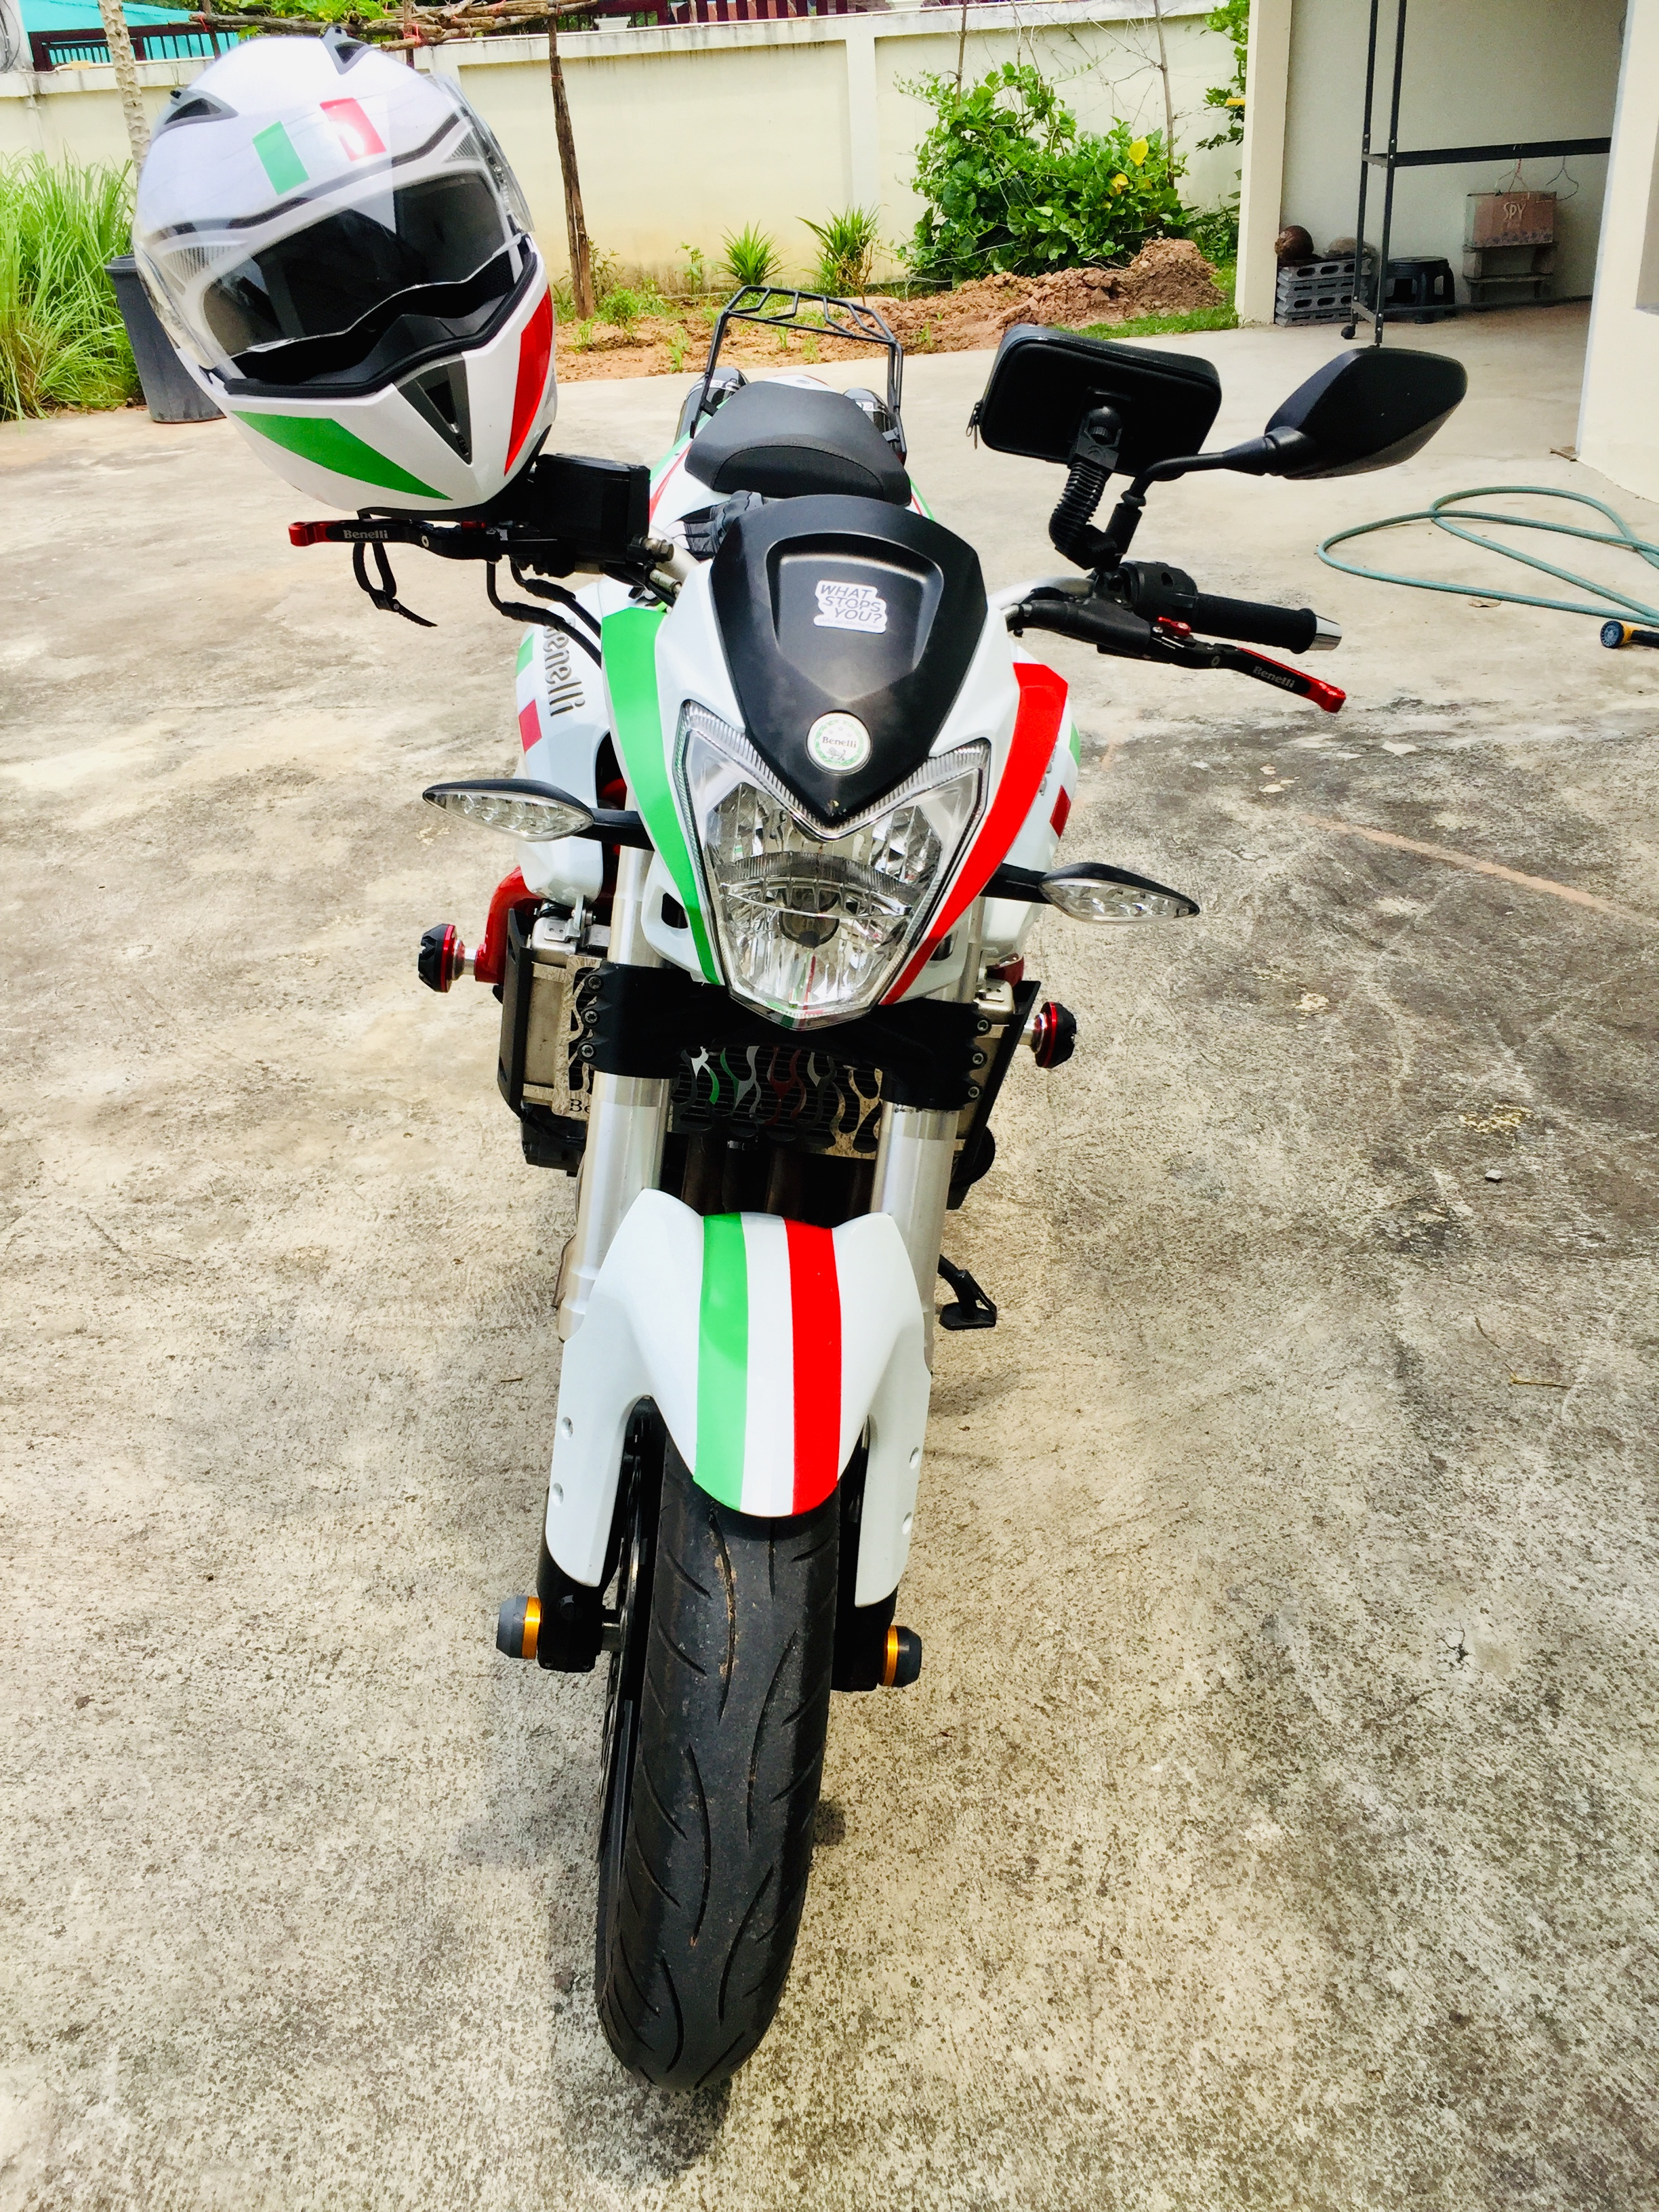 Wanted to buy a Honda CB650 but bought a Benelli bn600J instead.-8169bd86-112d-4bc1-bd40-d74e73f06dd6.jpeg